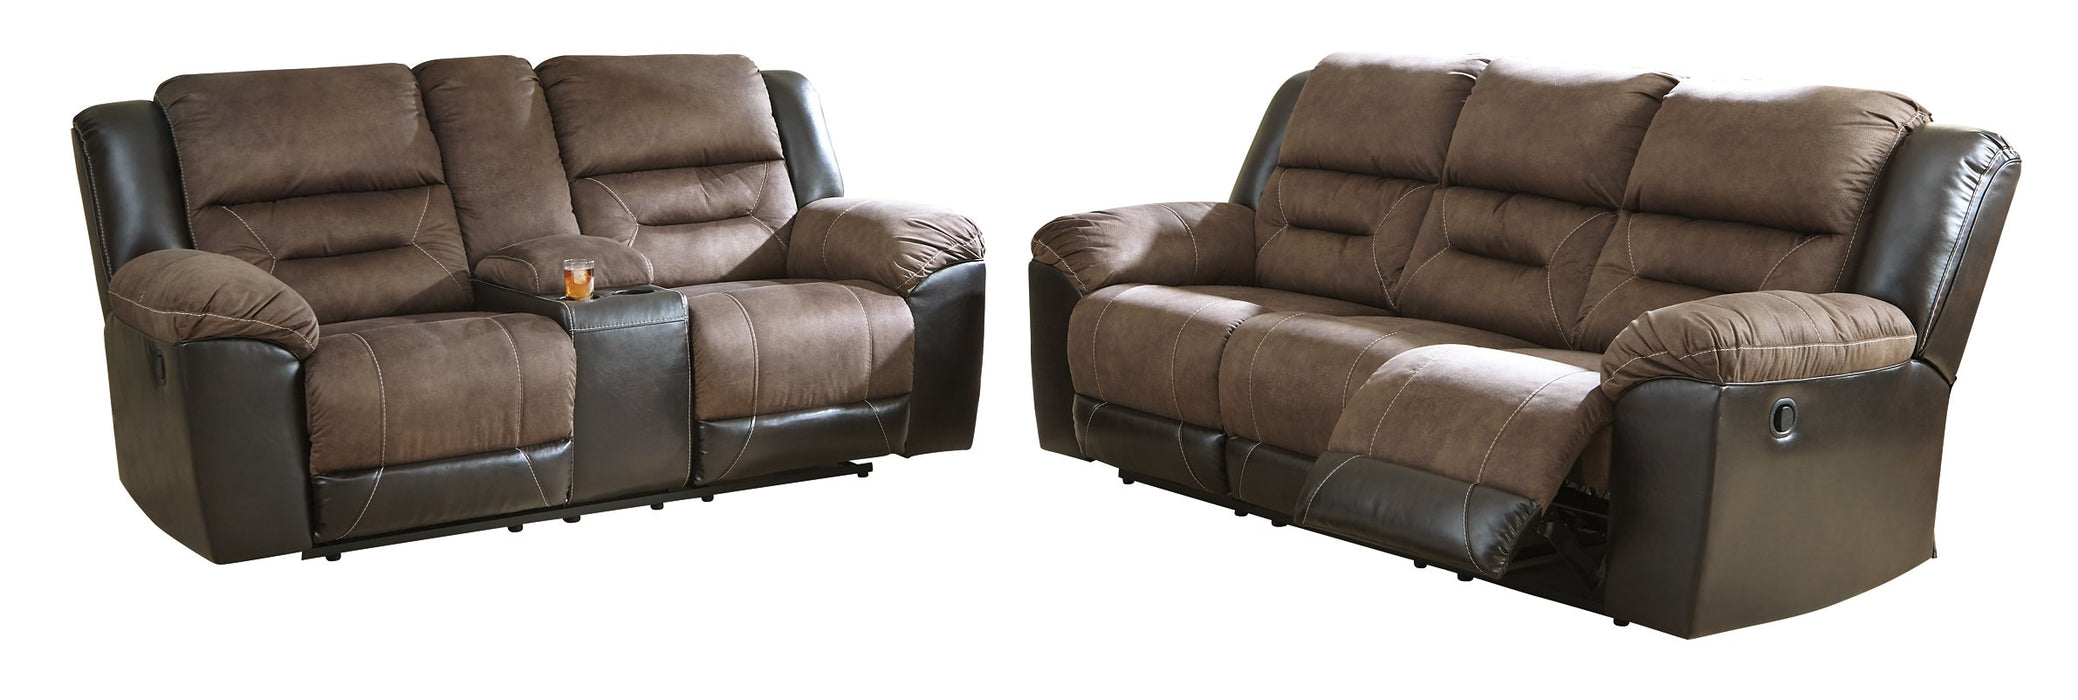 Earhart Signature Design Contemporary 2-Piece Living Room Set